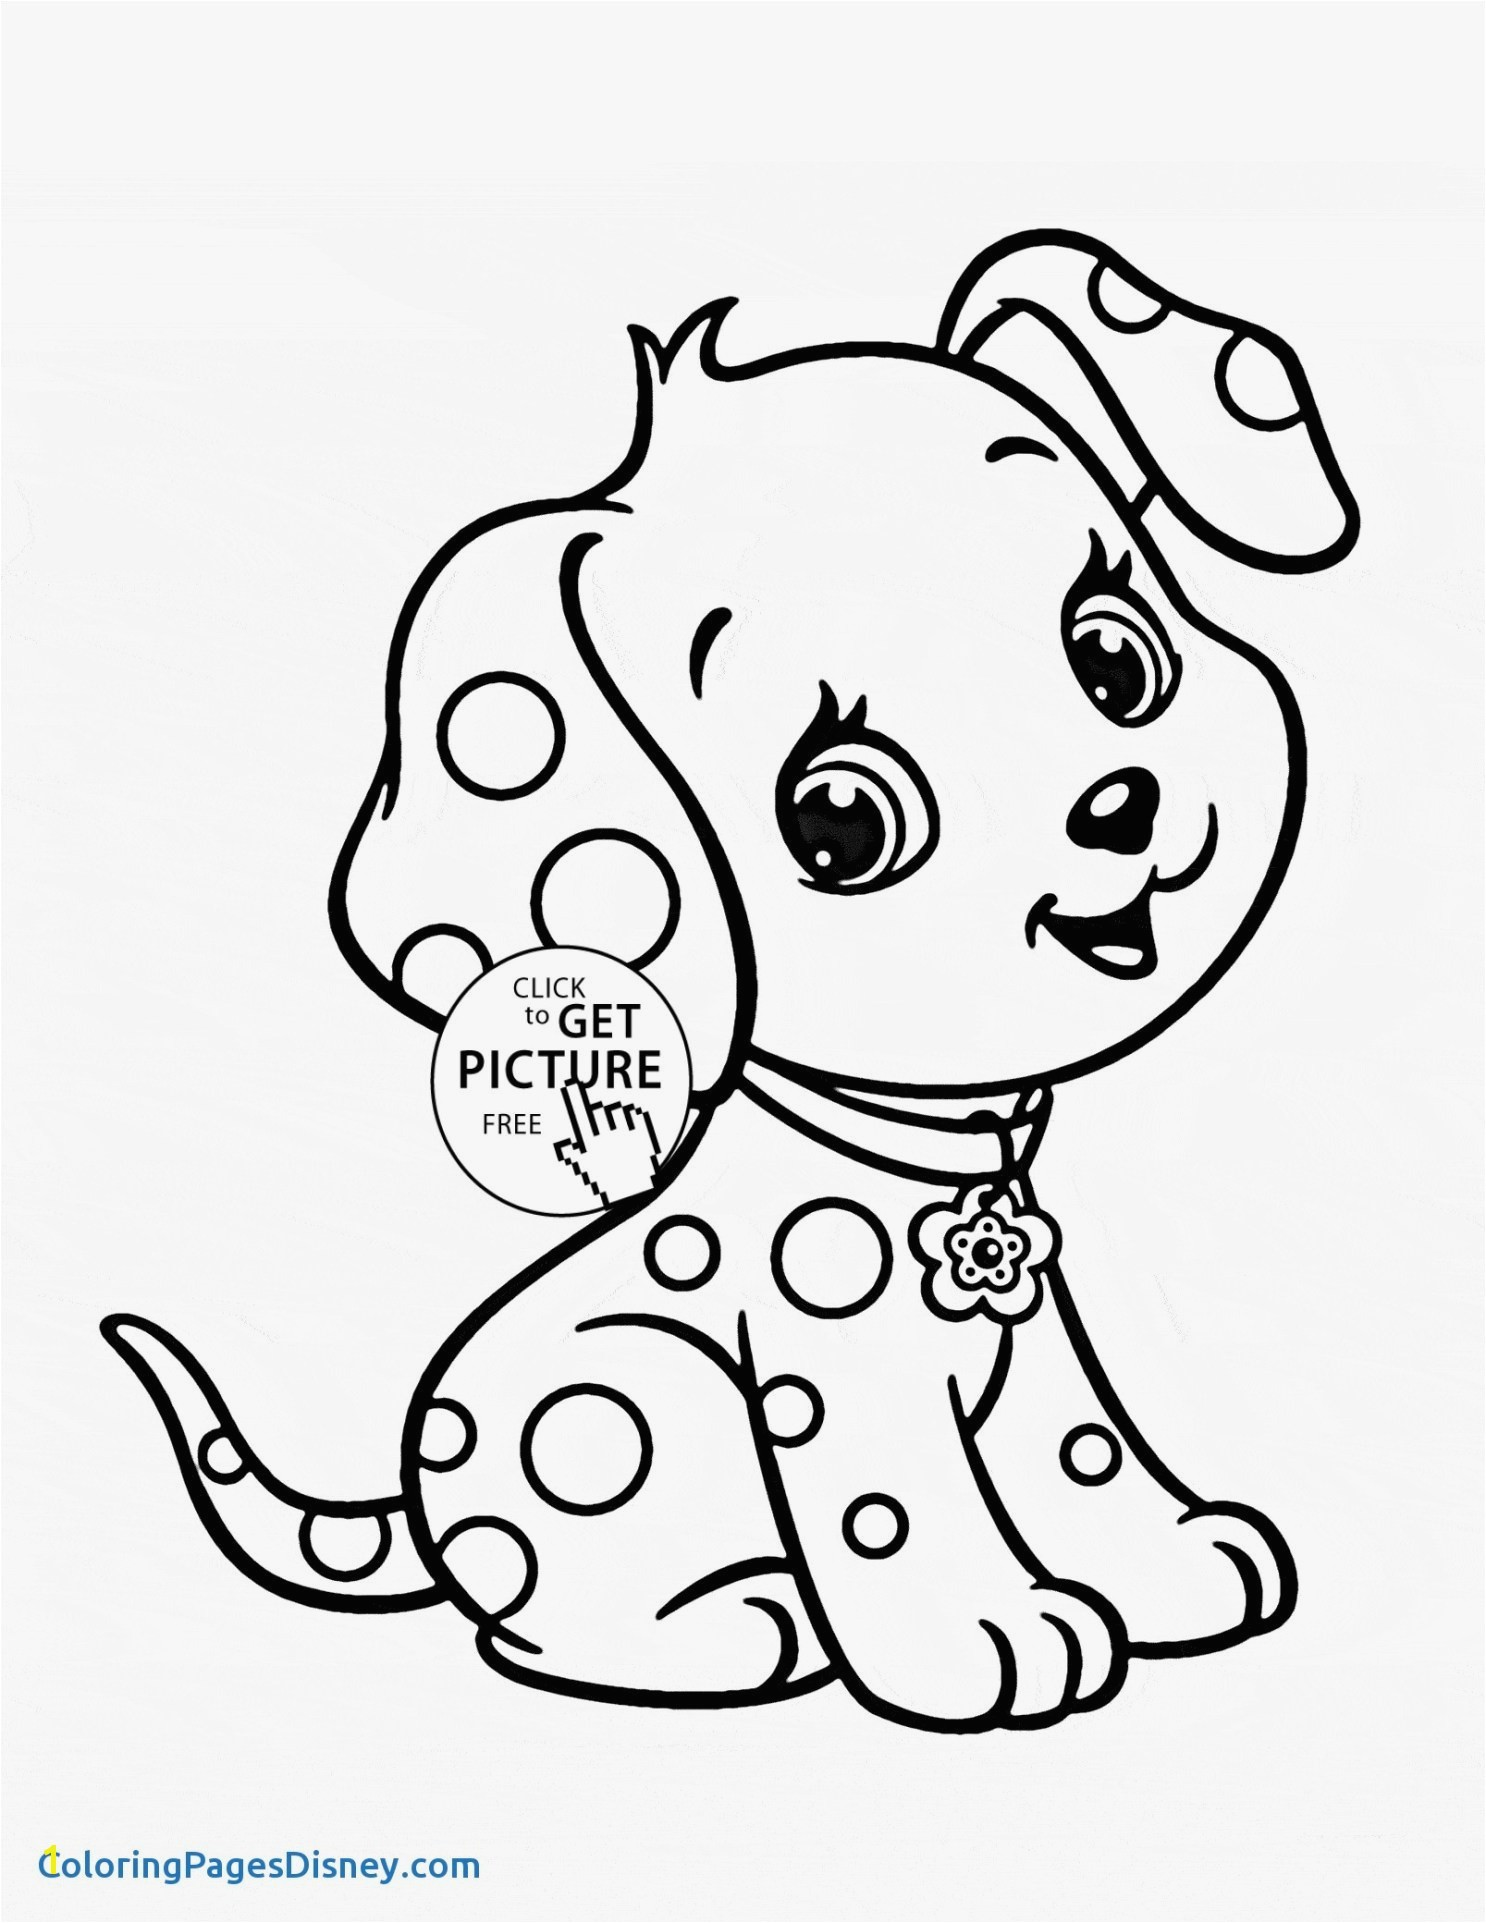 Free Printable Disney Coloring Pages For Kids Printable Coloring Book Disney Luxury Fitnesscoloring Pages 0d